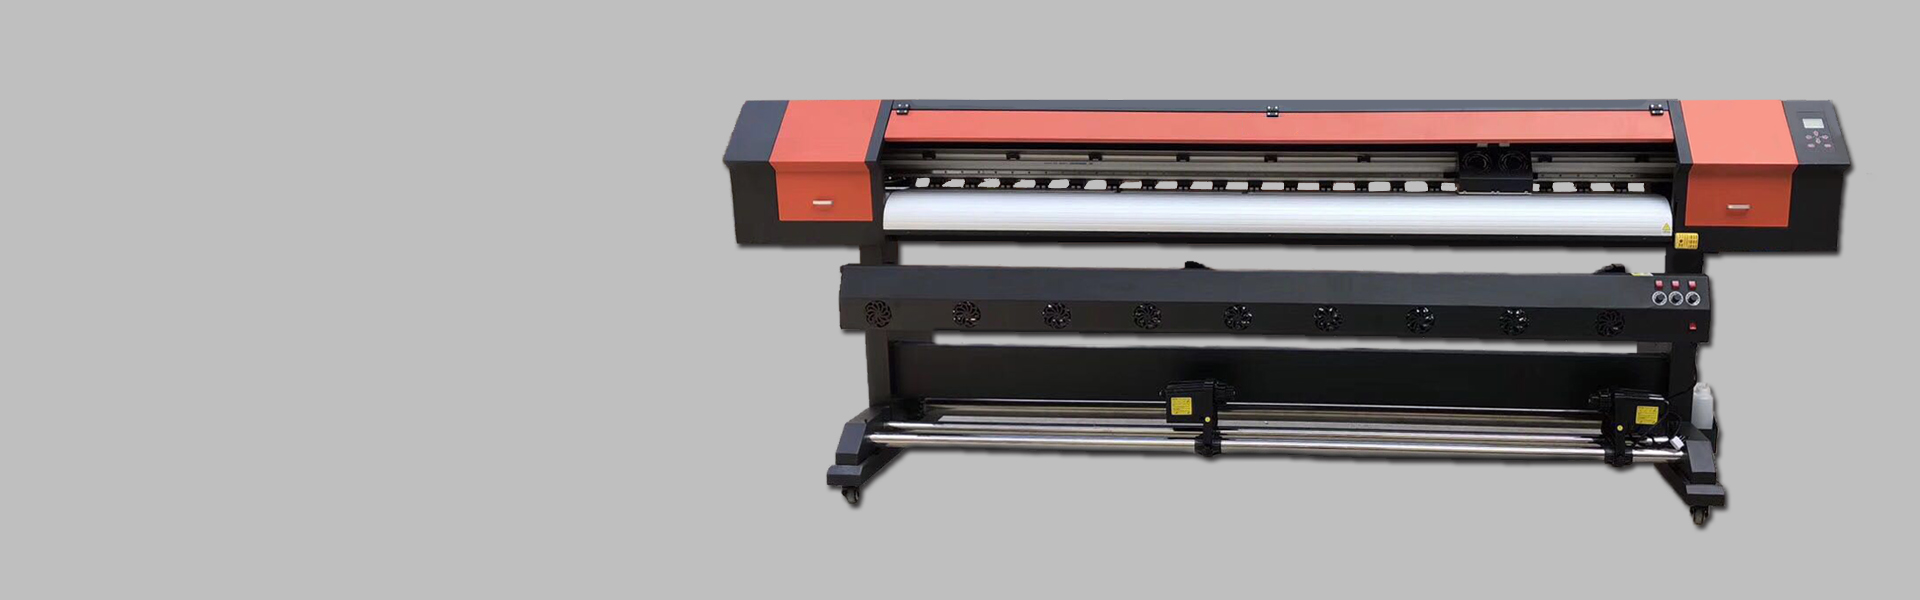 large format eco solvent printer